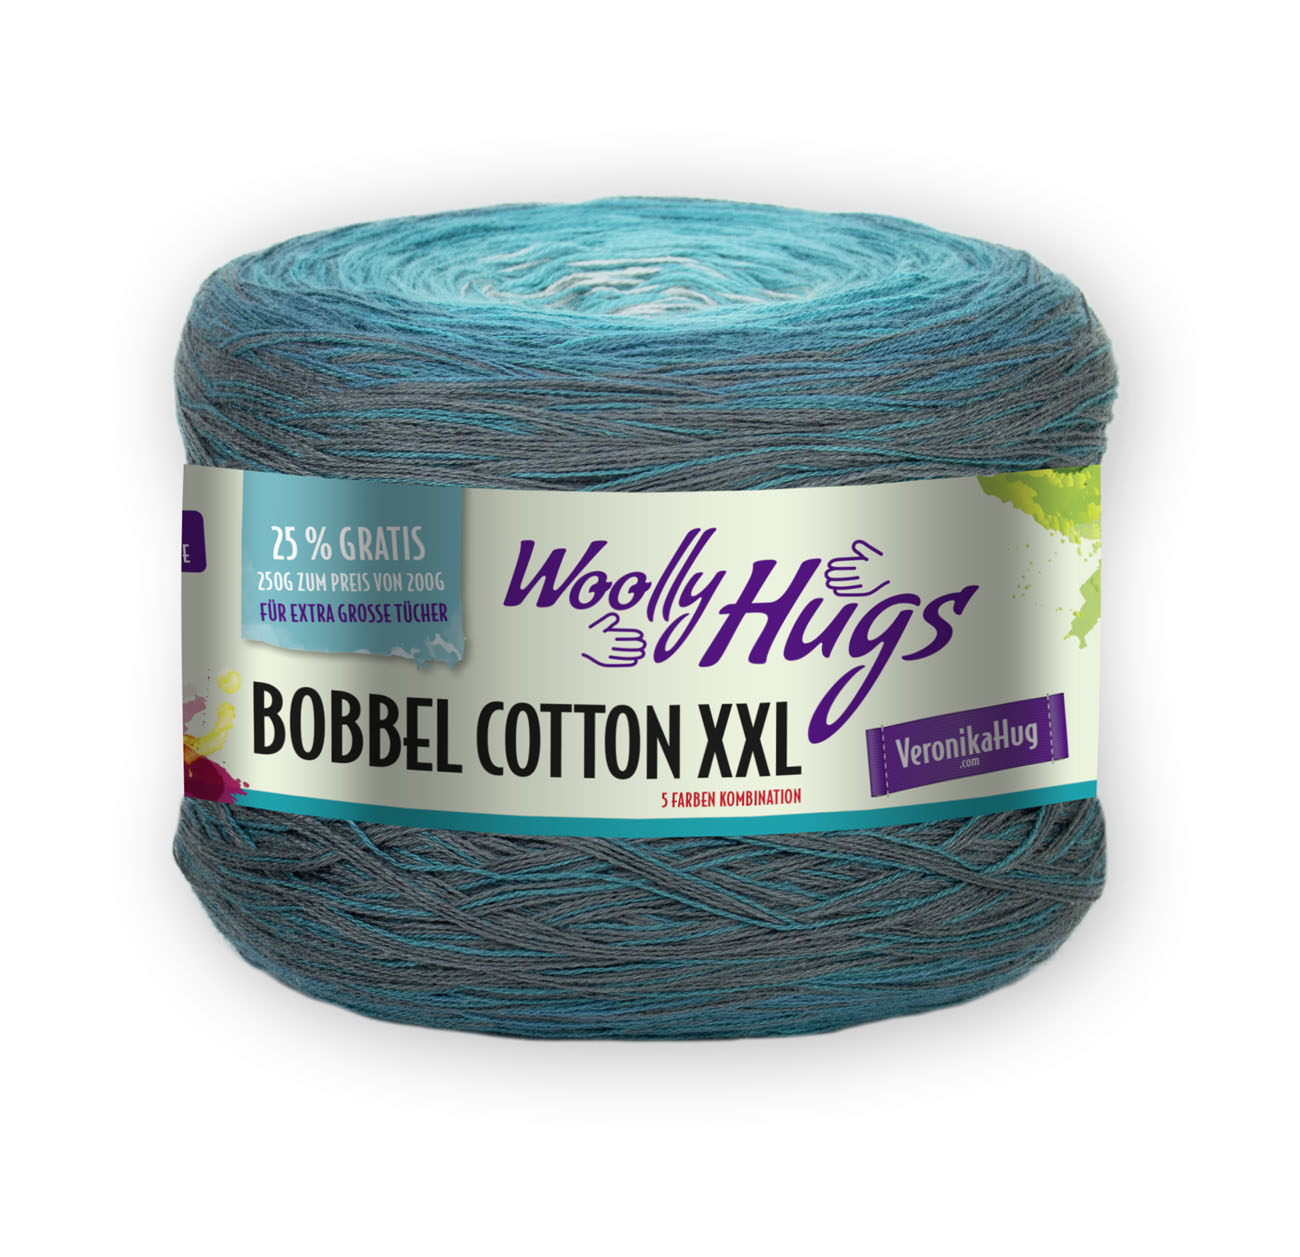 Woolly Hugs BOBBEL cotton XXL 250g 1kg